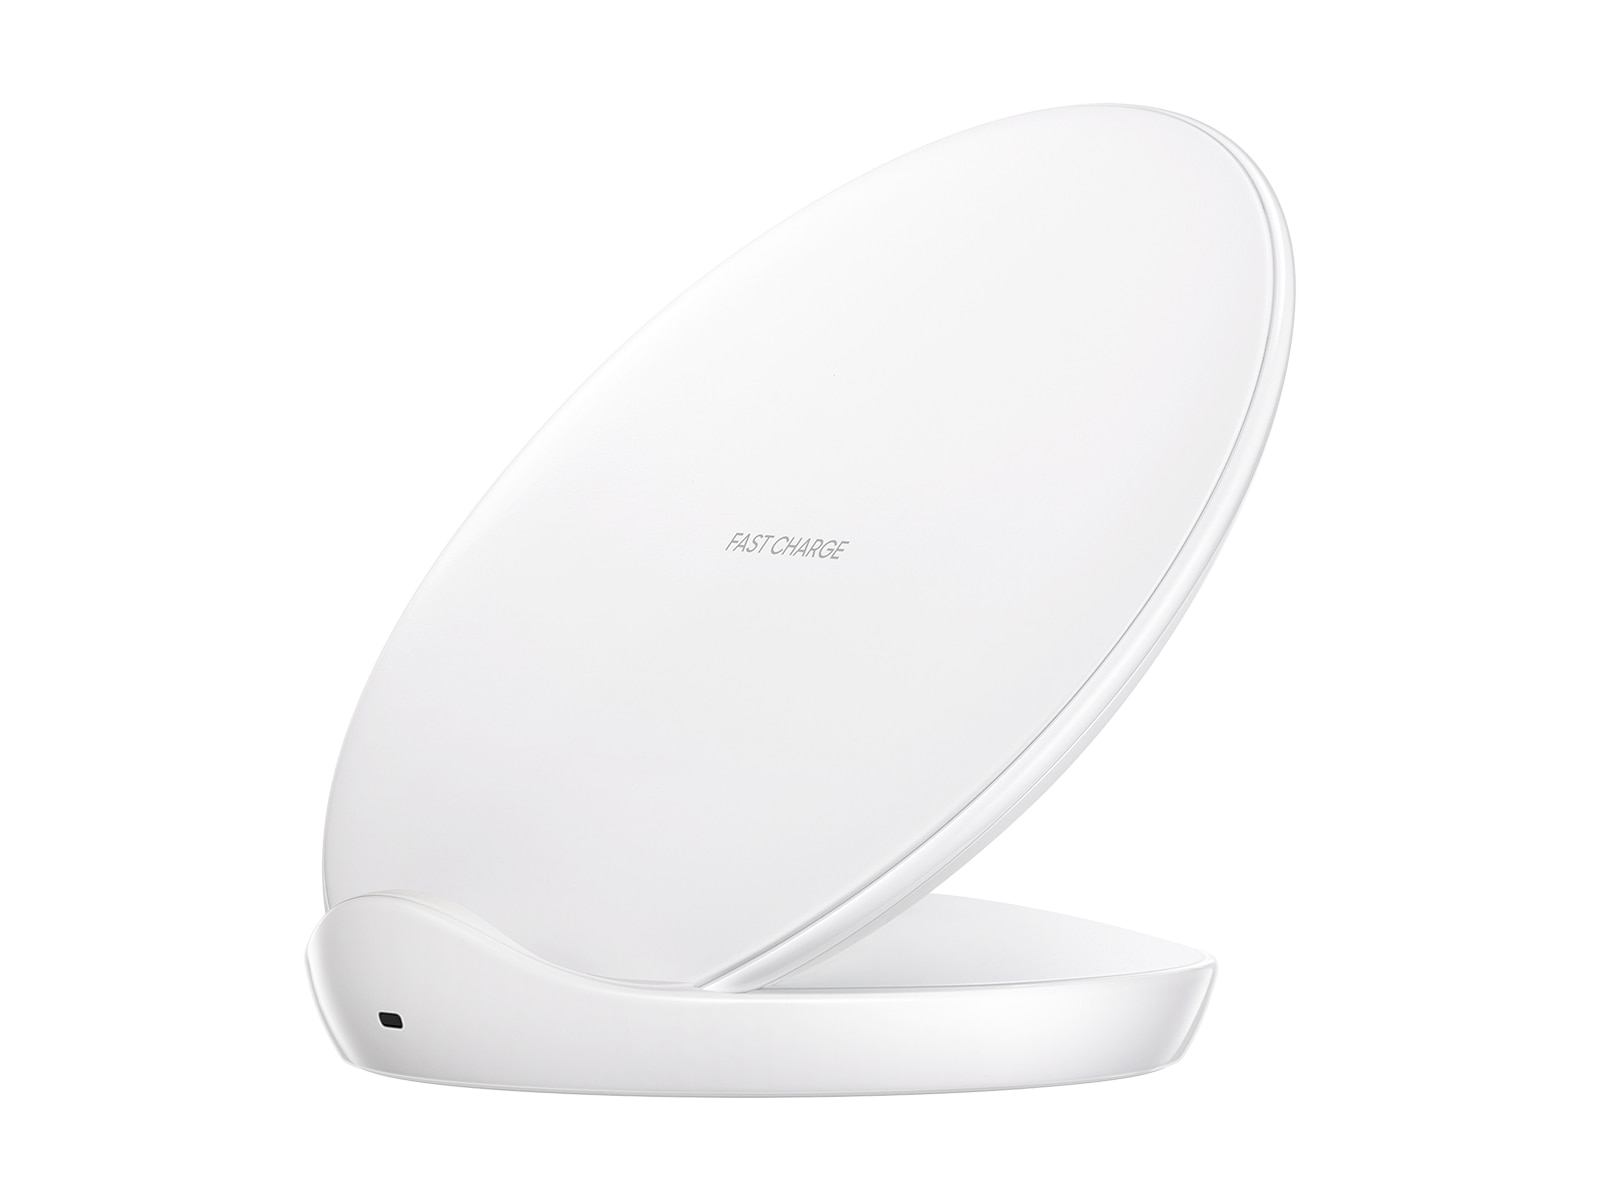 Thumbnail image of Fast Charge Wireless Charging Stand 2018, White